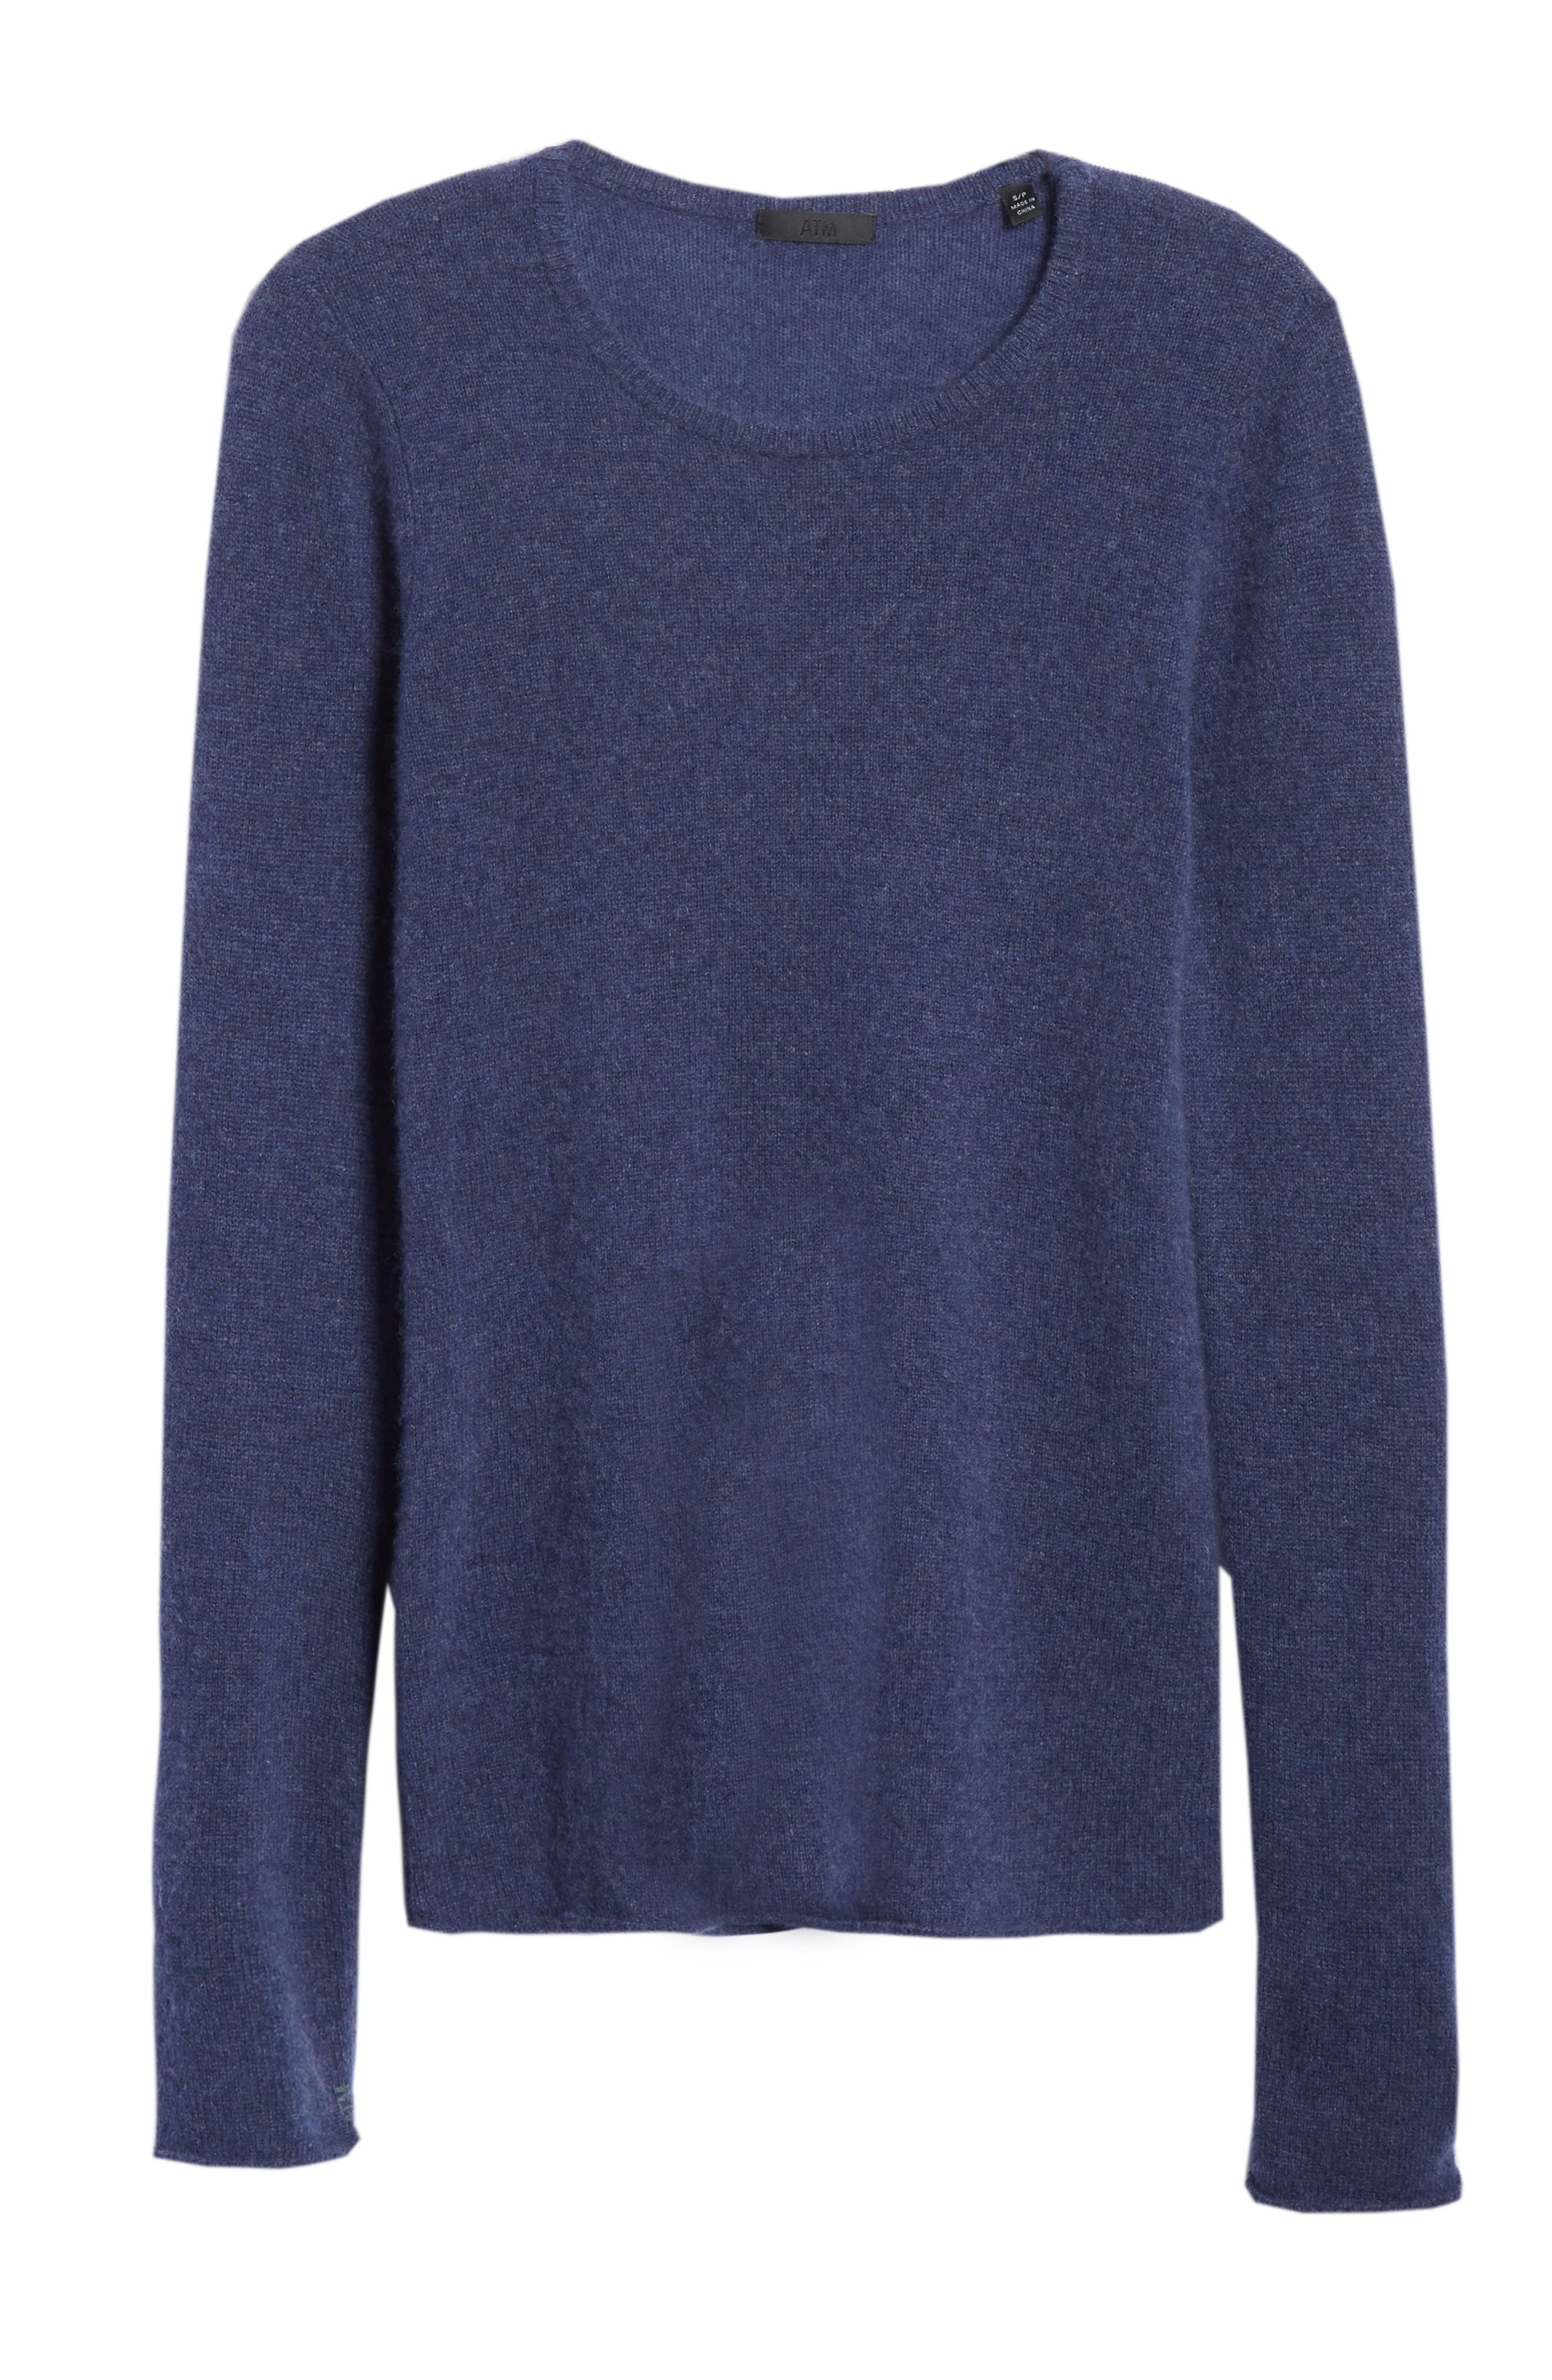 Cashmere Sweater,                             Alternate thumbnail 6, color,                             HEATHER NAVY